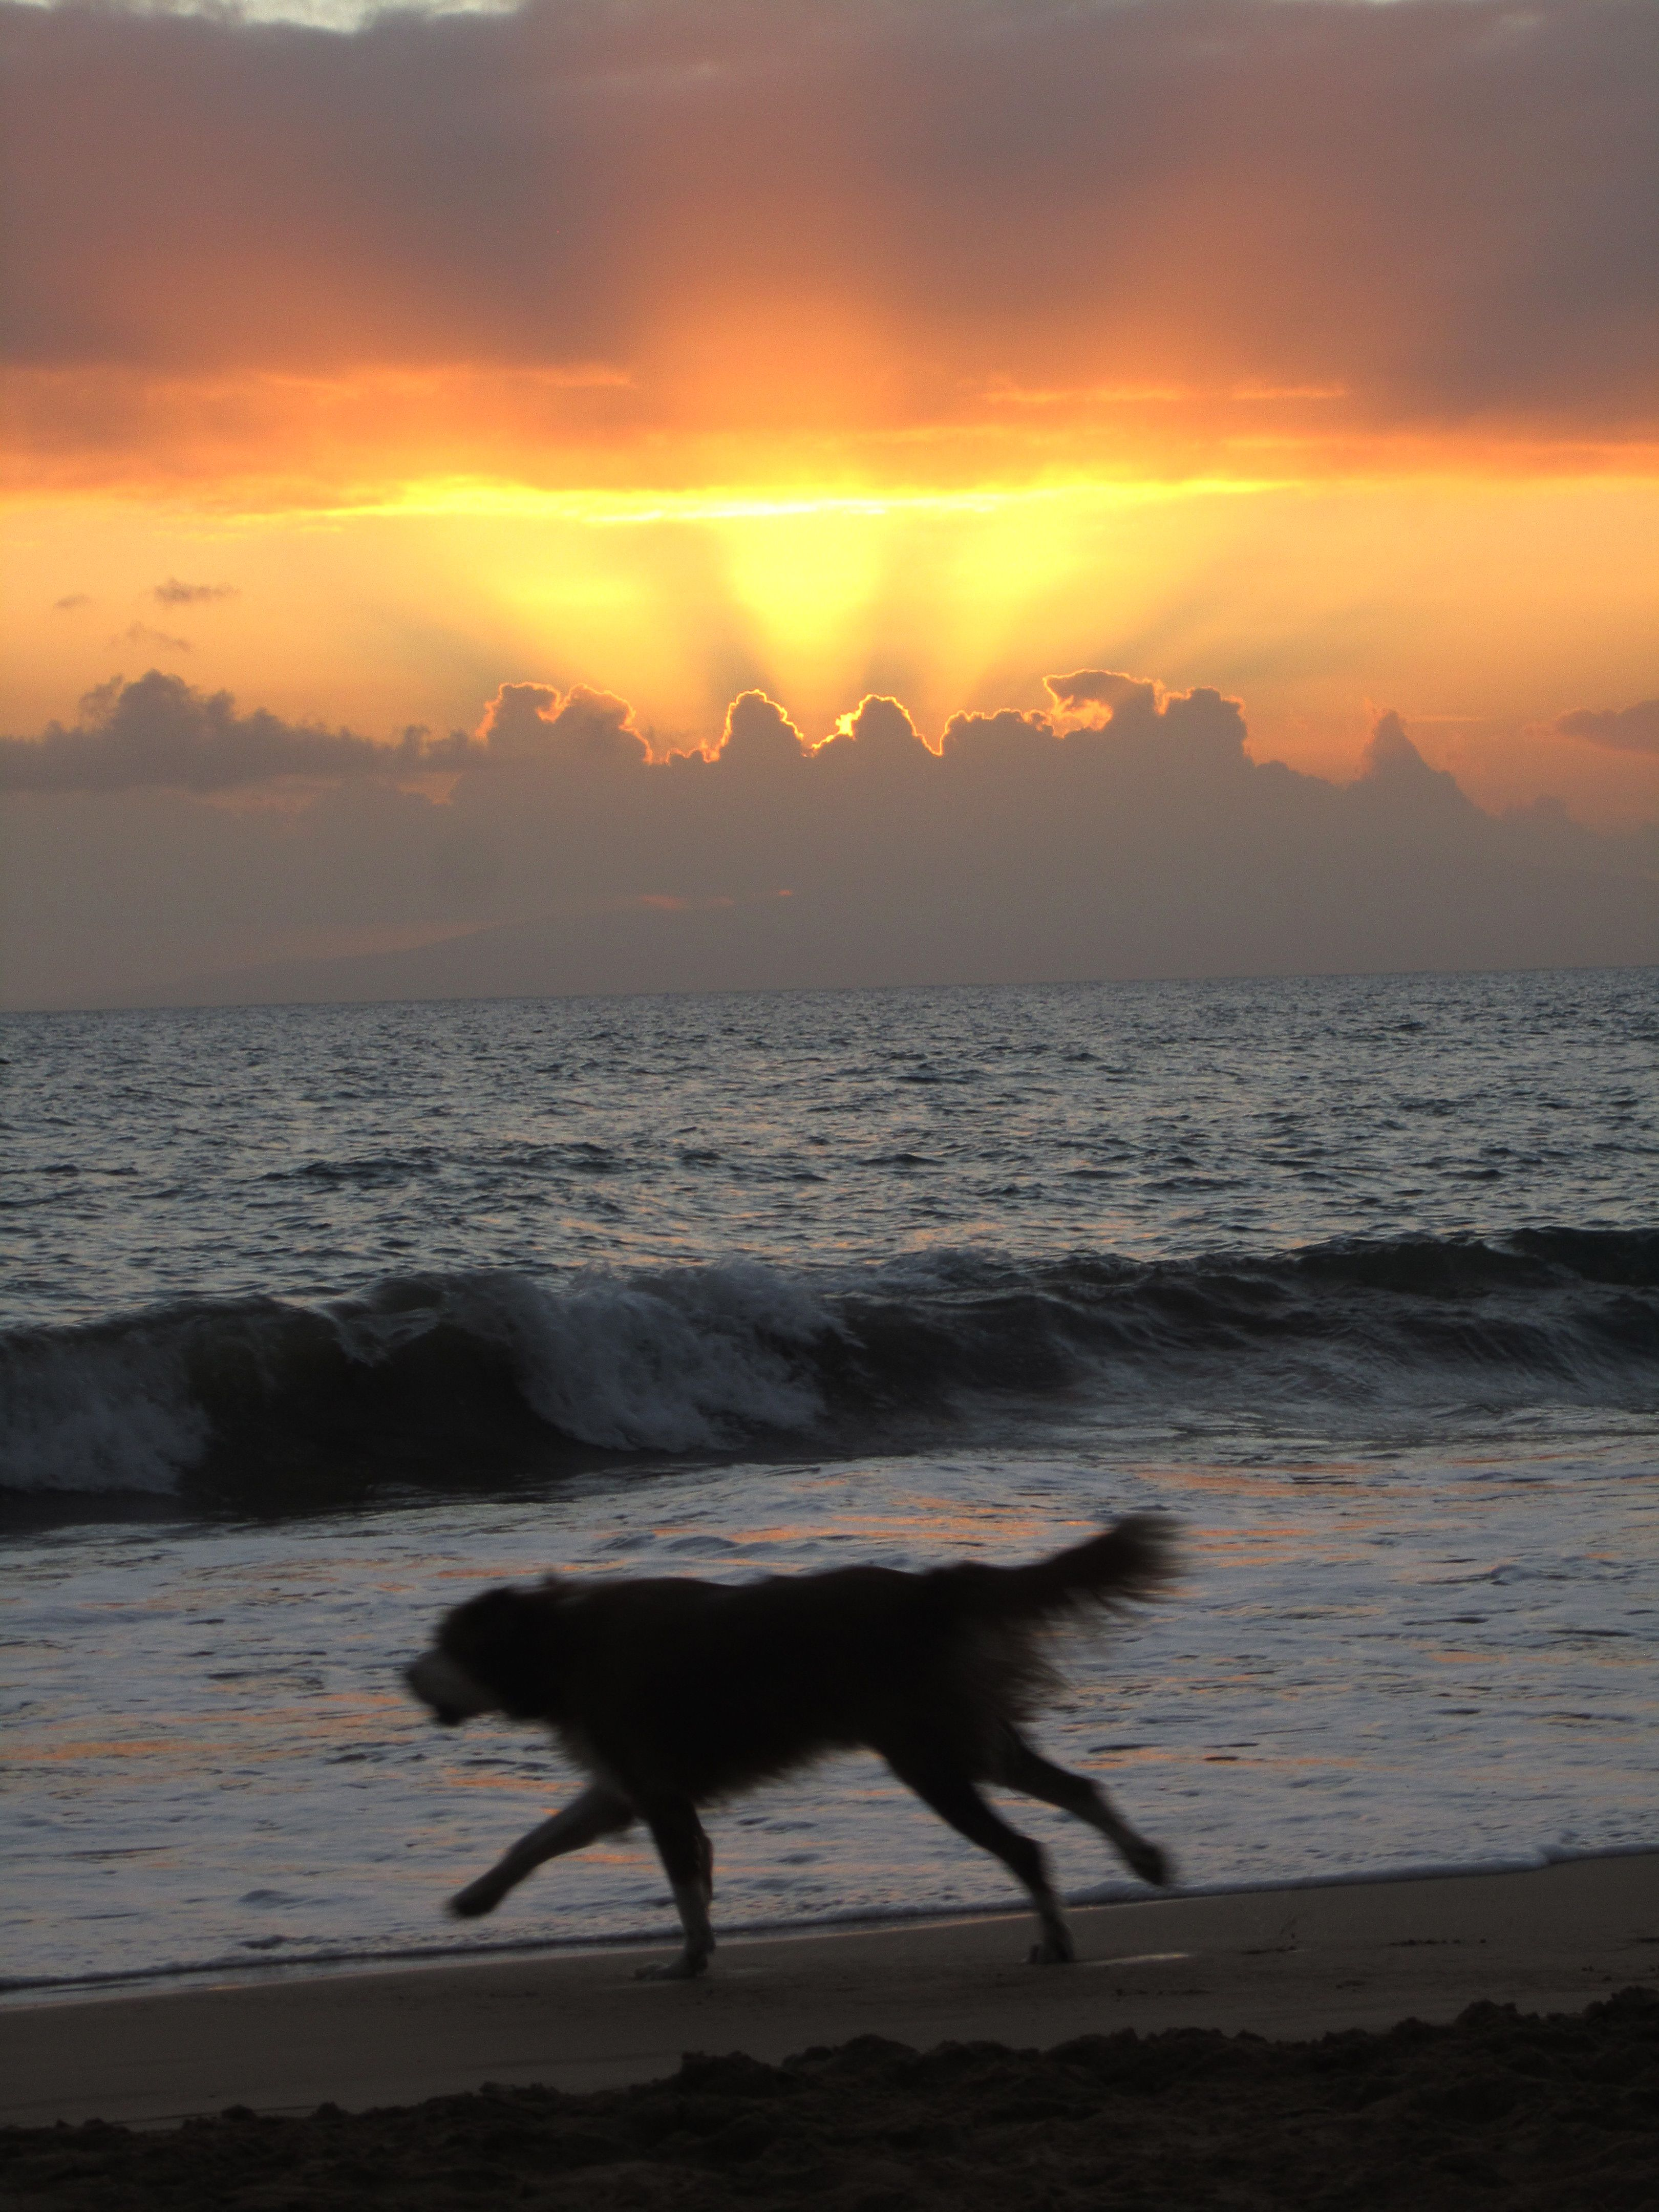 Dog on beach in Maui.  FREEDOM and JOY and BEAUTY!